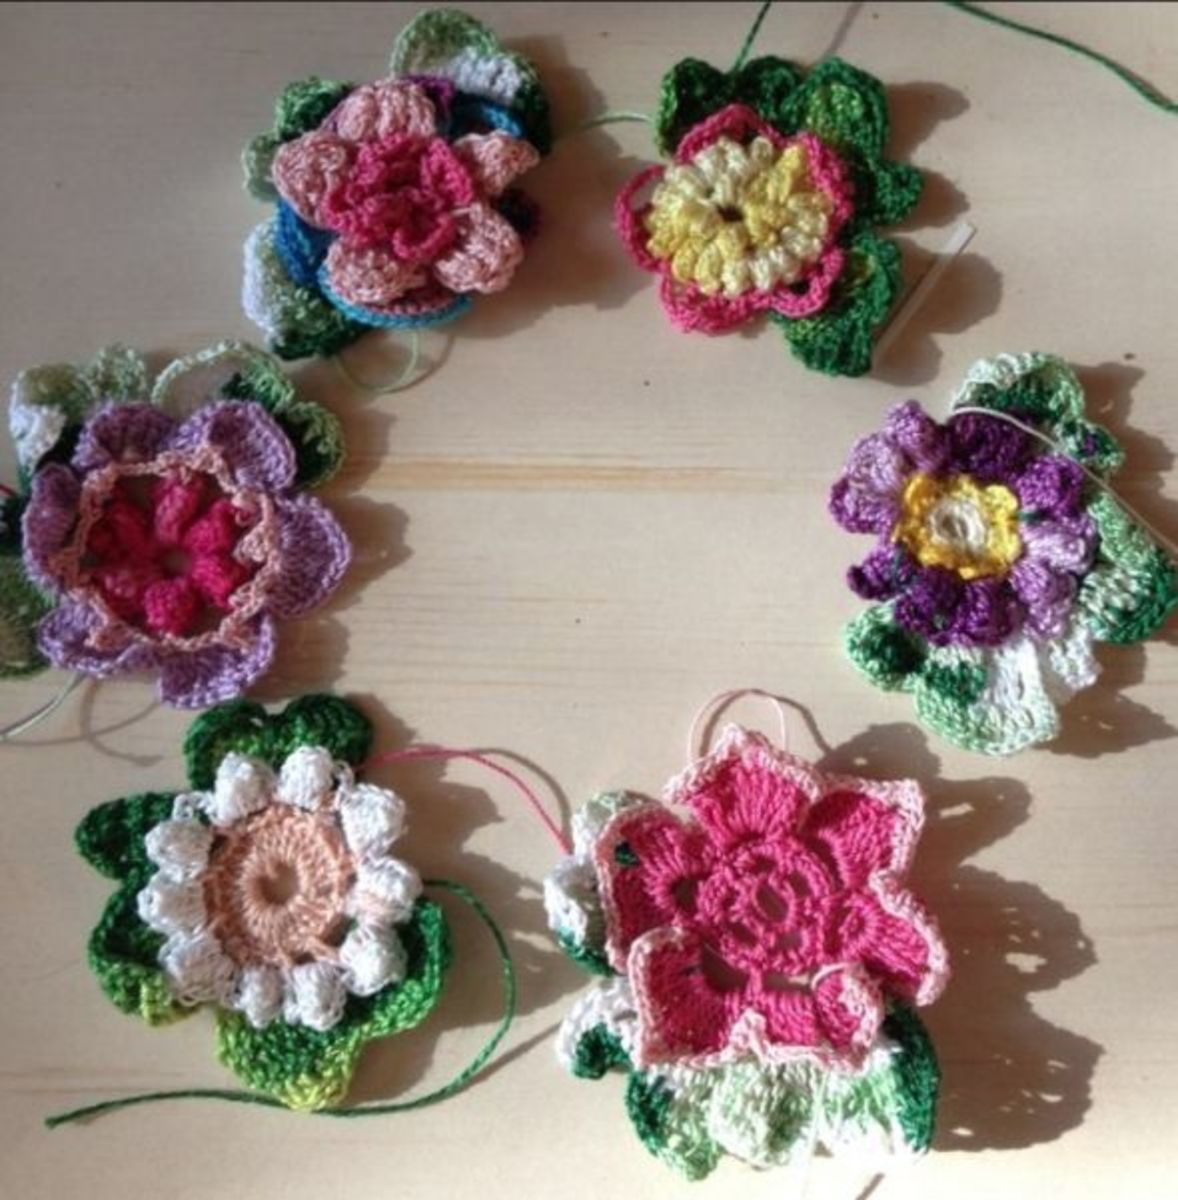 A simple floral wreath when you add the simple joining technique.